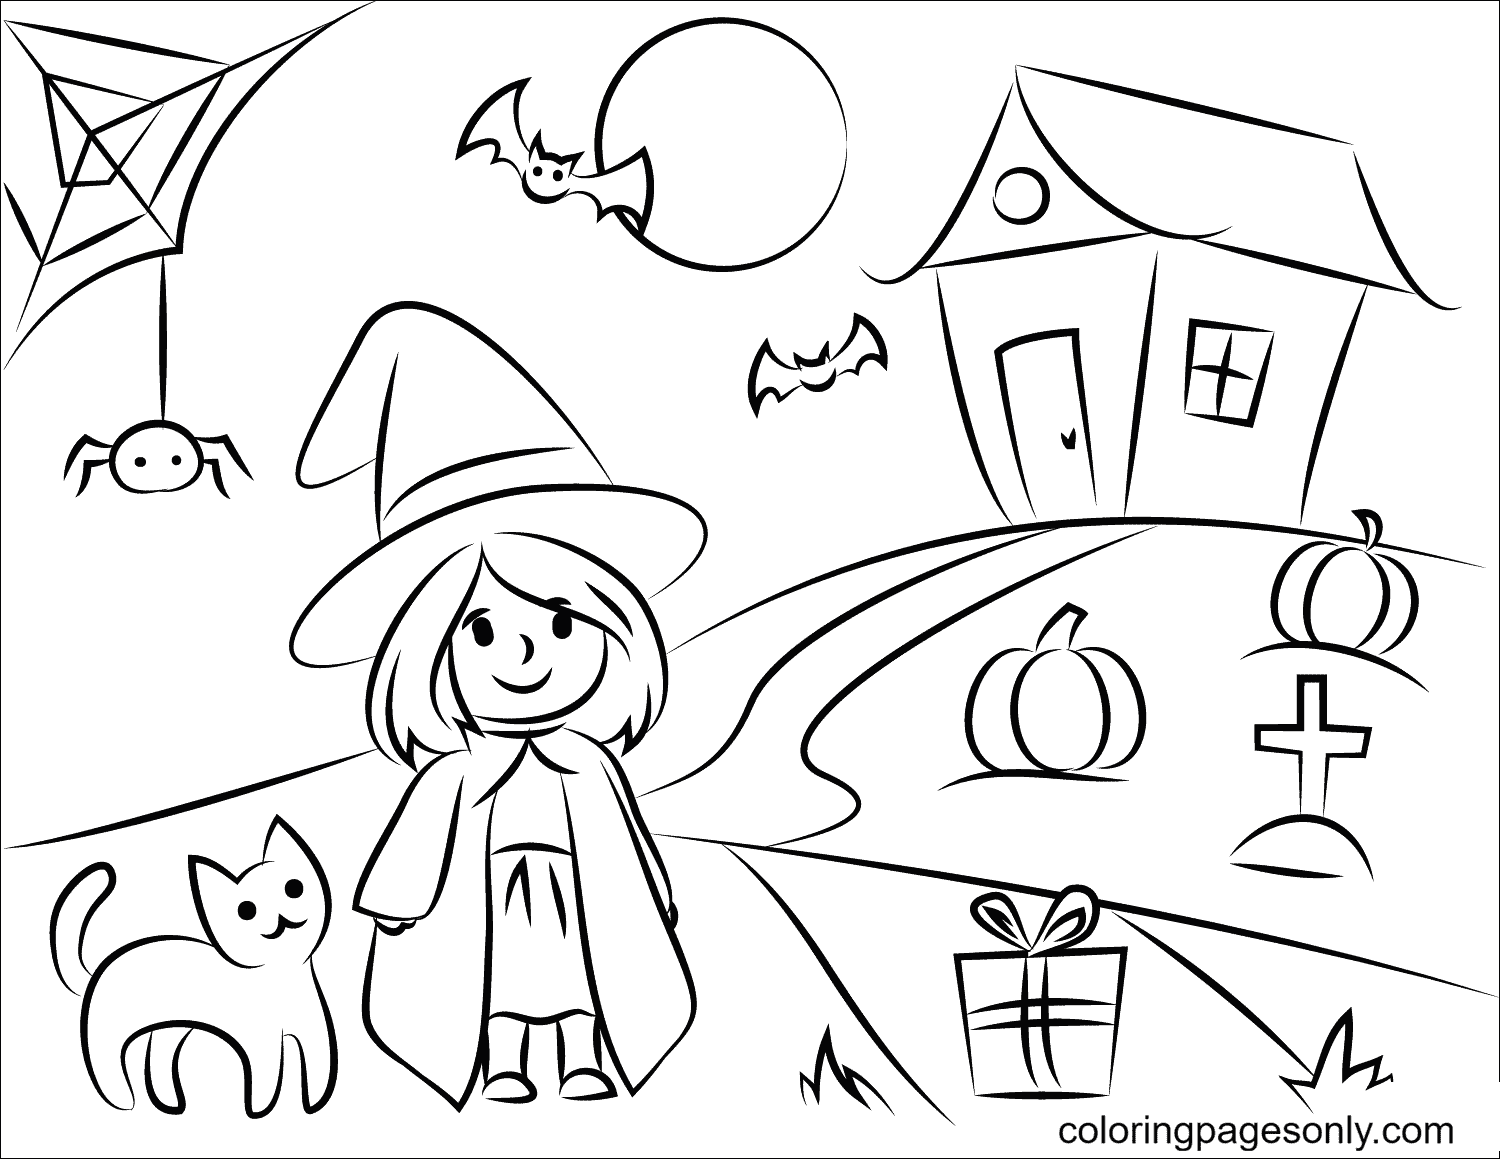 Little Witch, Black Cat and Haunted House Coloring Page